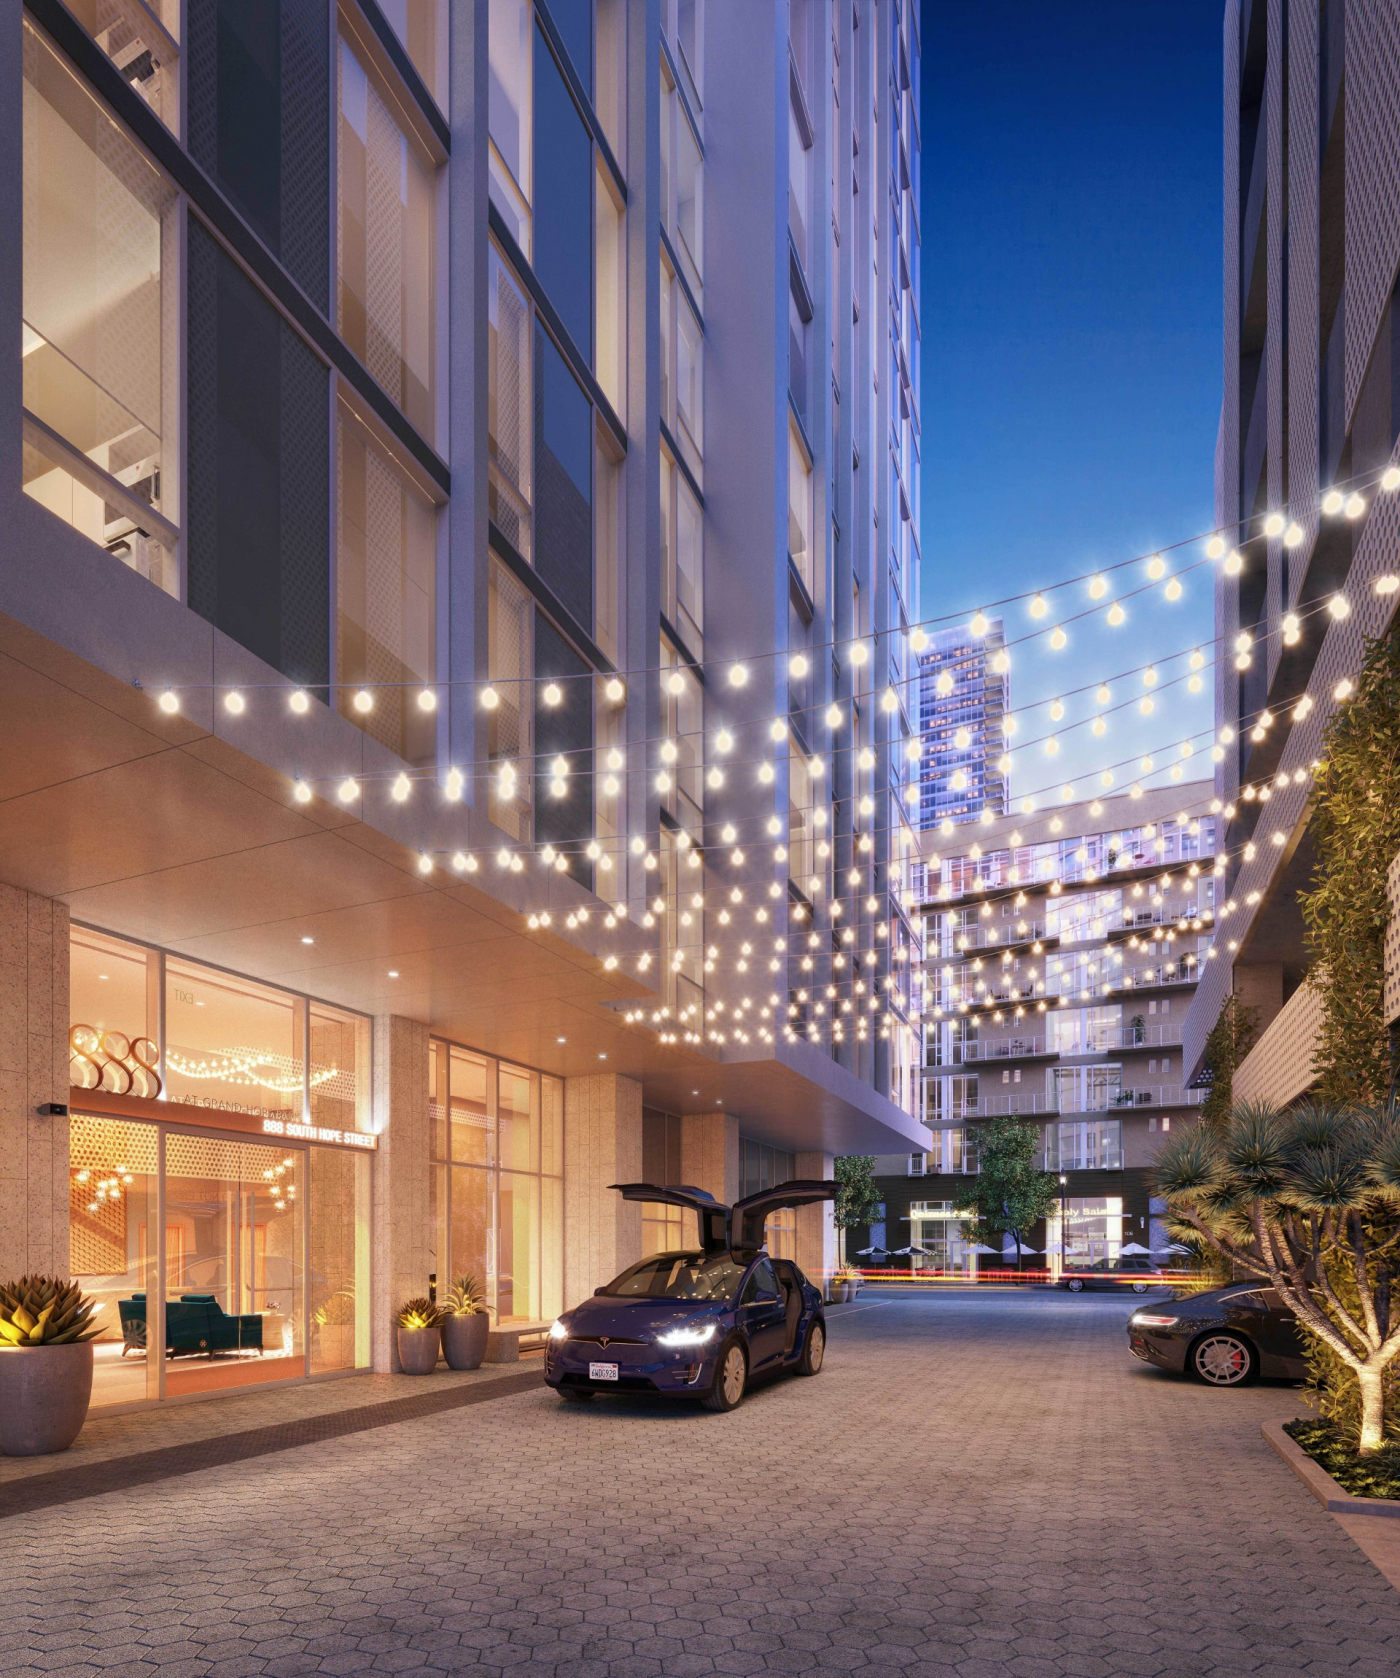 Apartments In Downtown La Rent: Boutique Luxury Apartments For Rent In